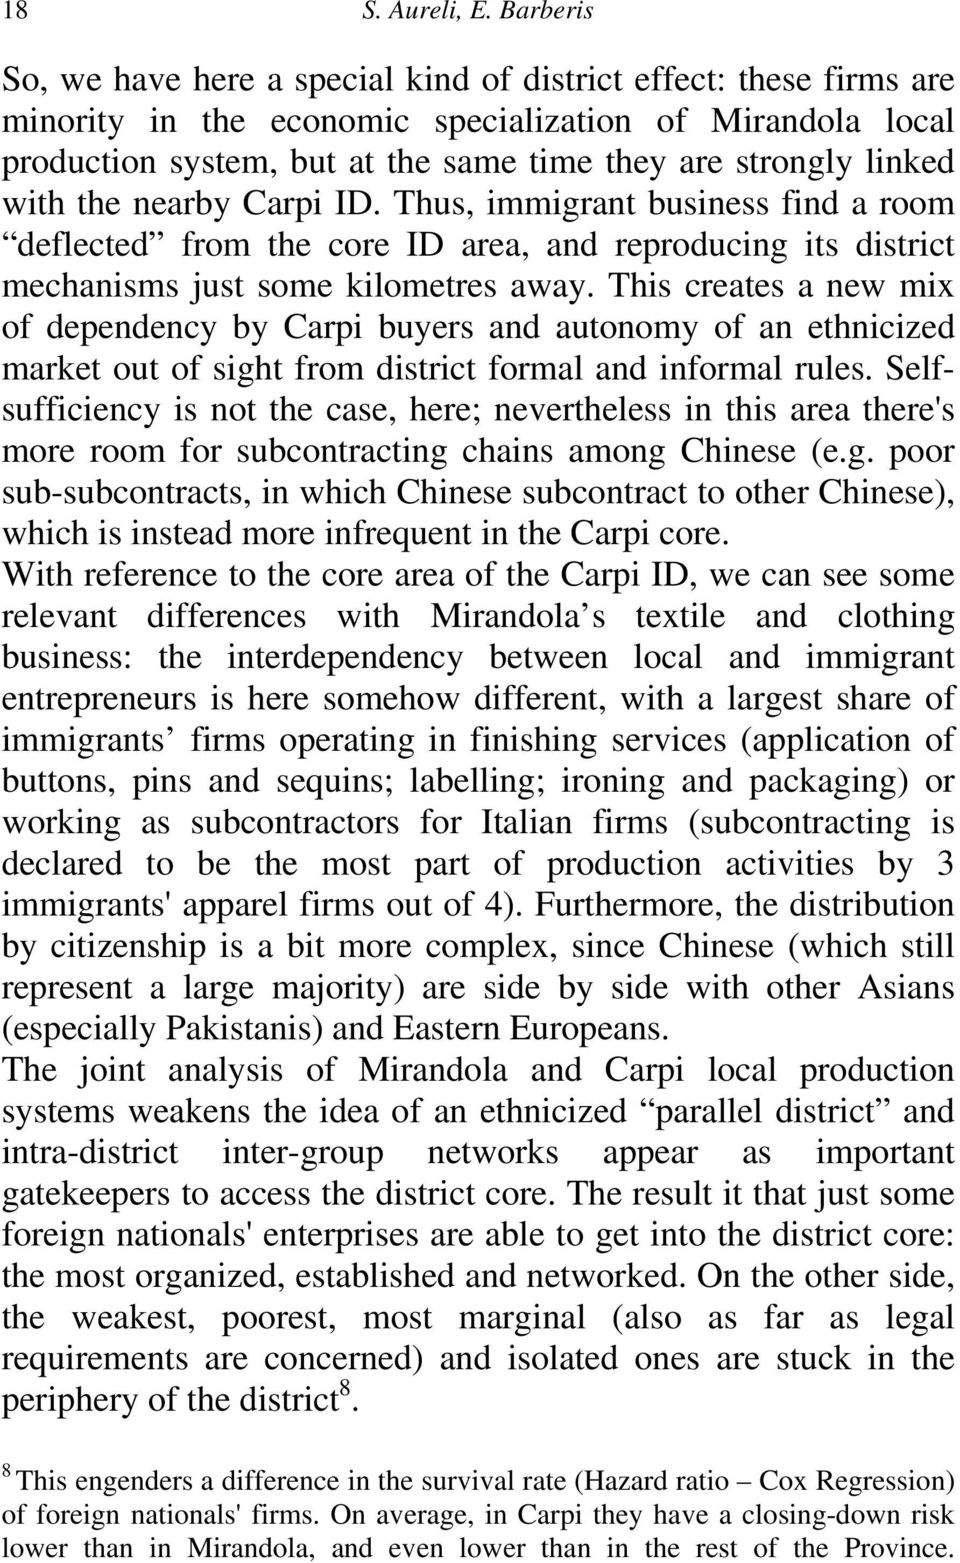 linked with the nearby Carpi ID. Thus, immigrant business find a room deflected from the core ID area, and reproducing its district mechanisms just some kilometres away.